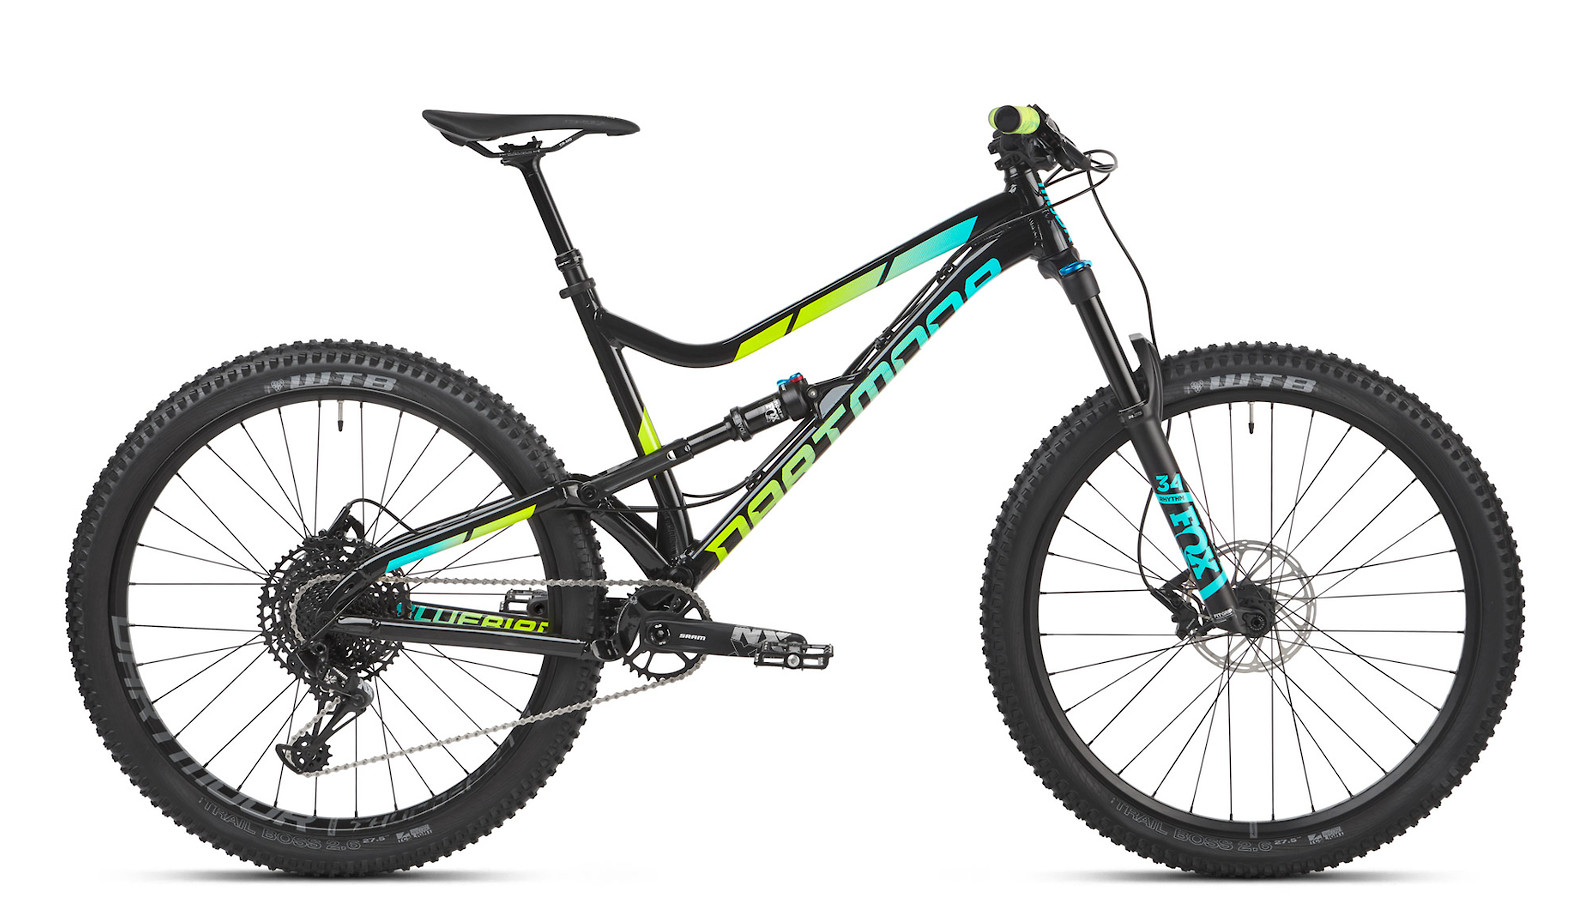 2019 Dartmoor Bluebird Pro 27.5 Bike